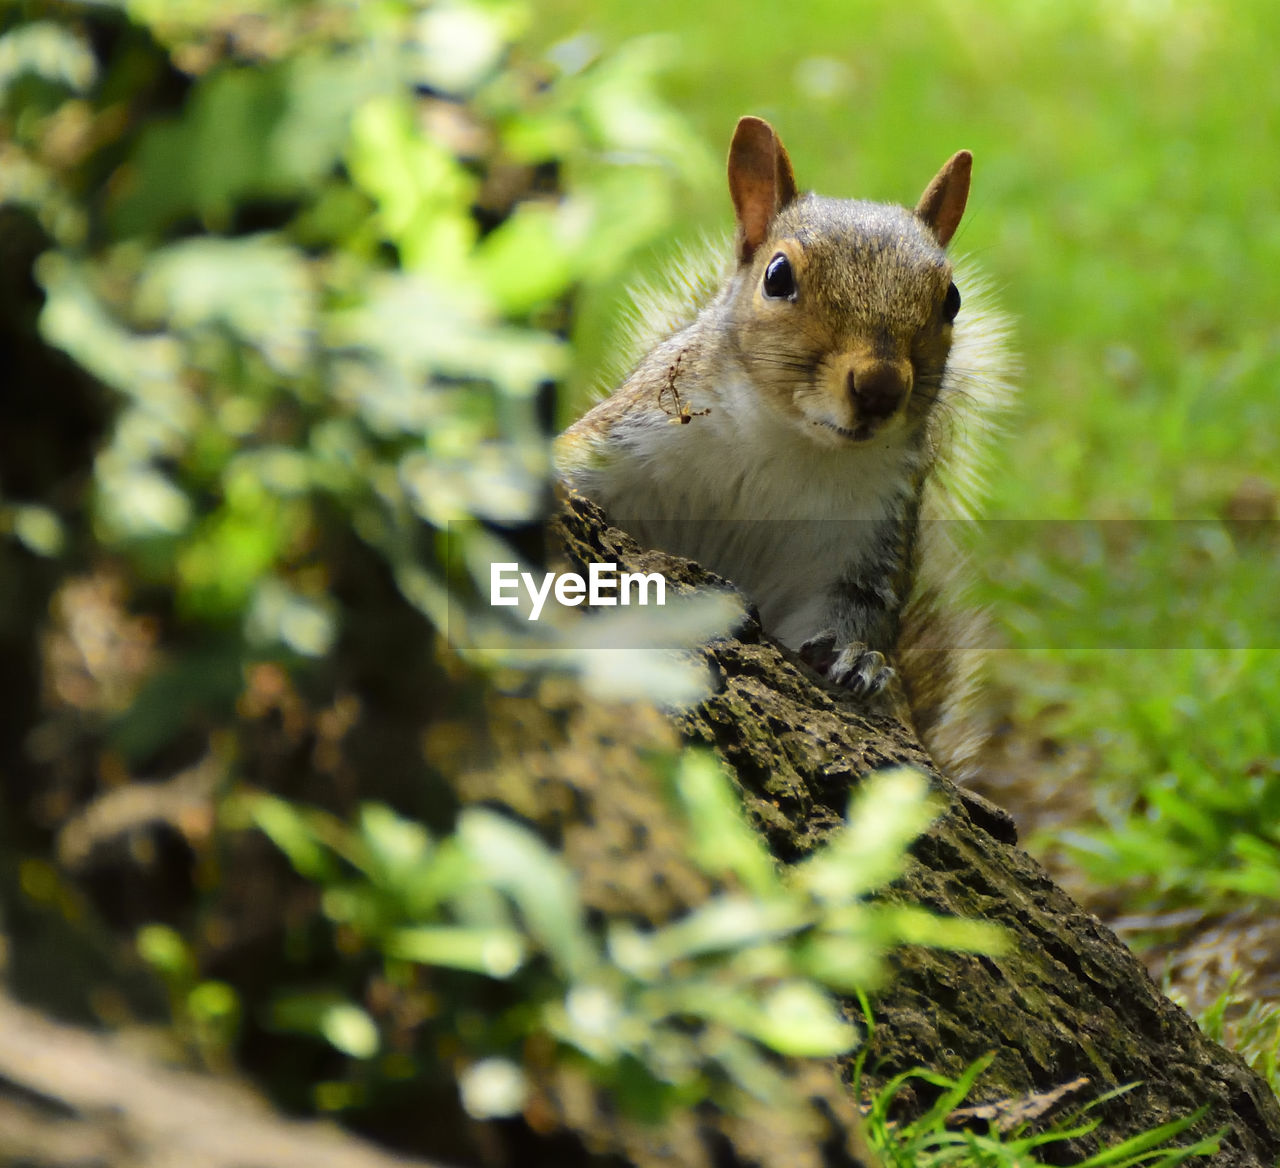 animal, animal themes, one animal, mammal, animal wildlife, rodent, animals in the wild, vertebrate, selective focus, no people, day, plant, nature, squirrel, looking at camera, close-up, land, portrait, tree, field, outdoors, animal head, whisker